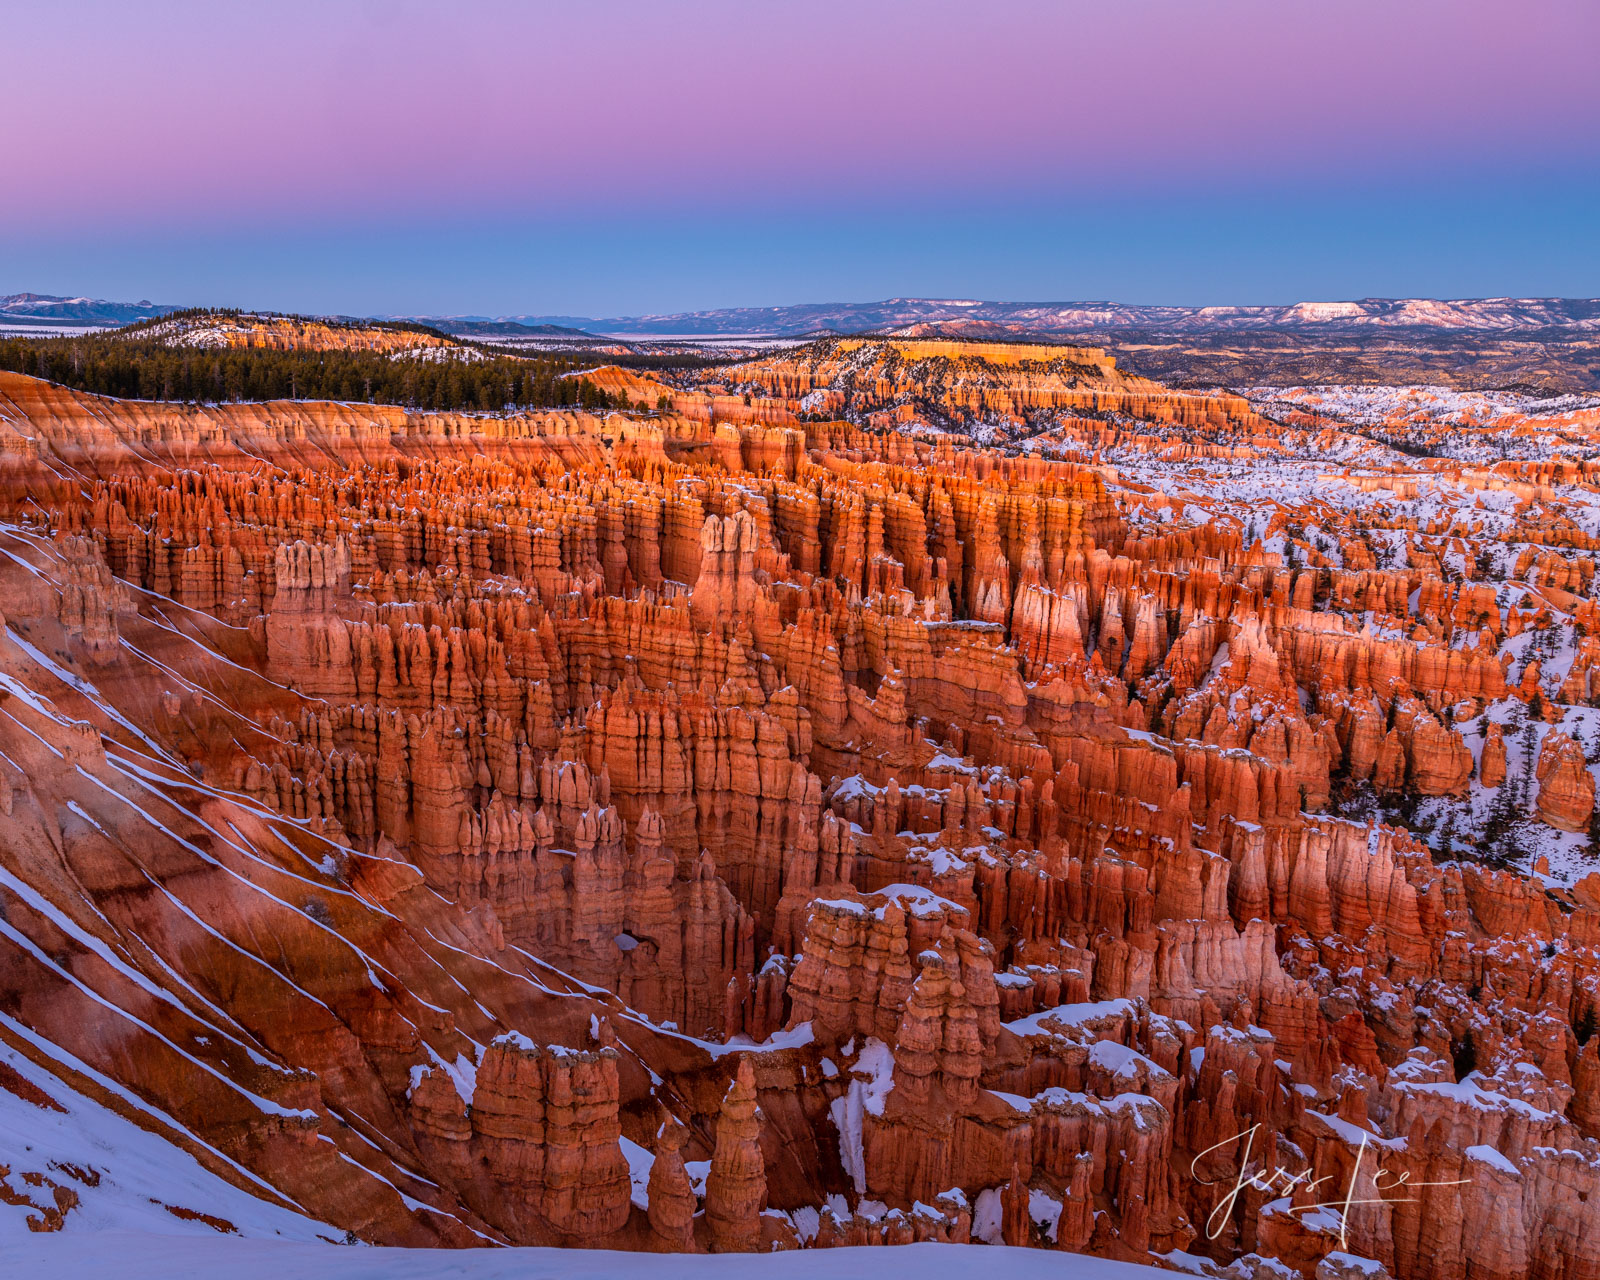 Limited Edition of 50 Exclusive high-resolution Museum Quality Fine Art Prints of Morning Glow over Bryce Canyon. Photos Copyright...